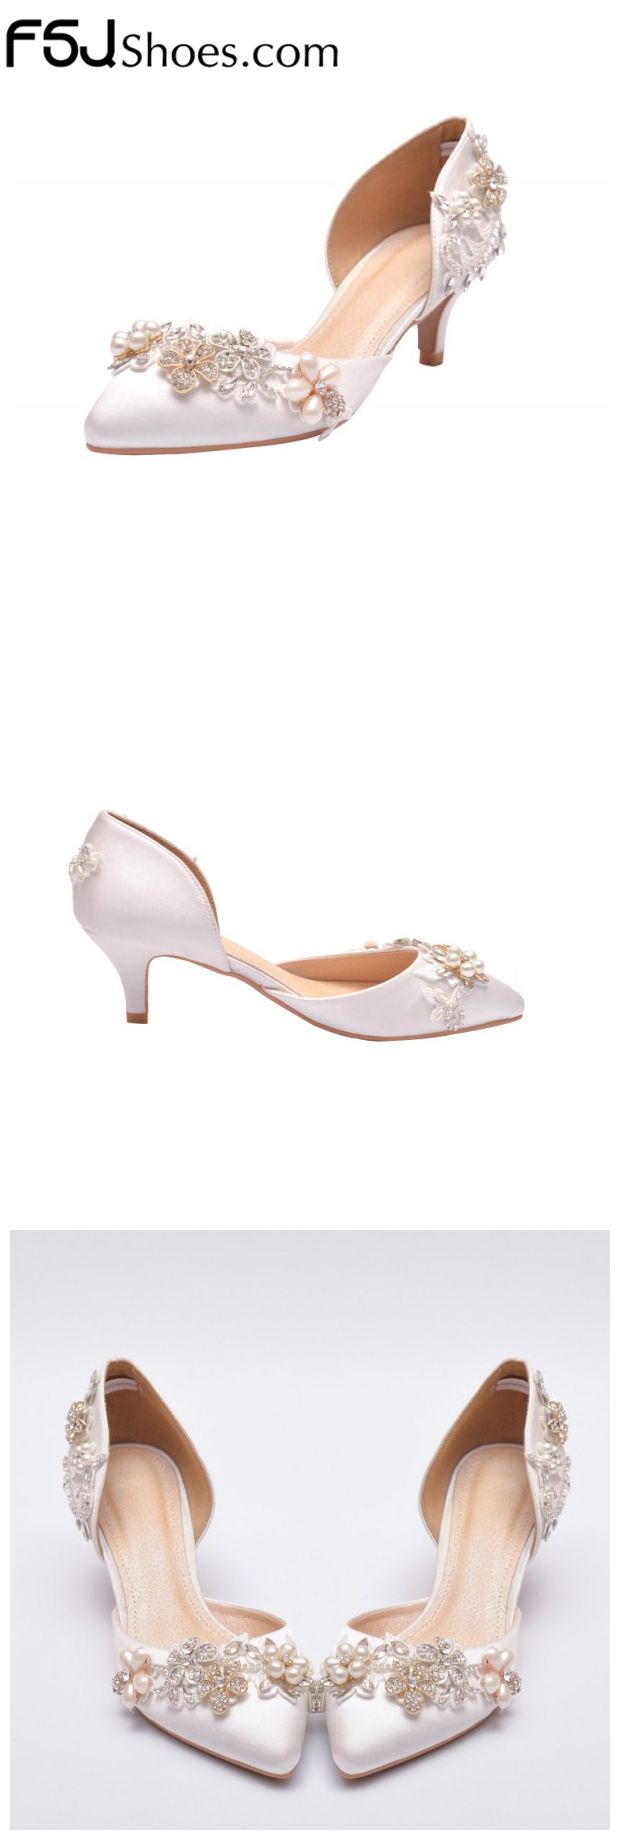 Pin On Fsjshoes Wedding Shoes